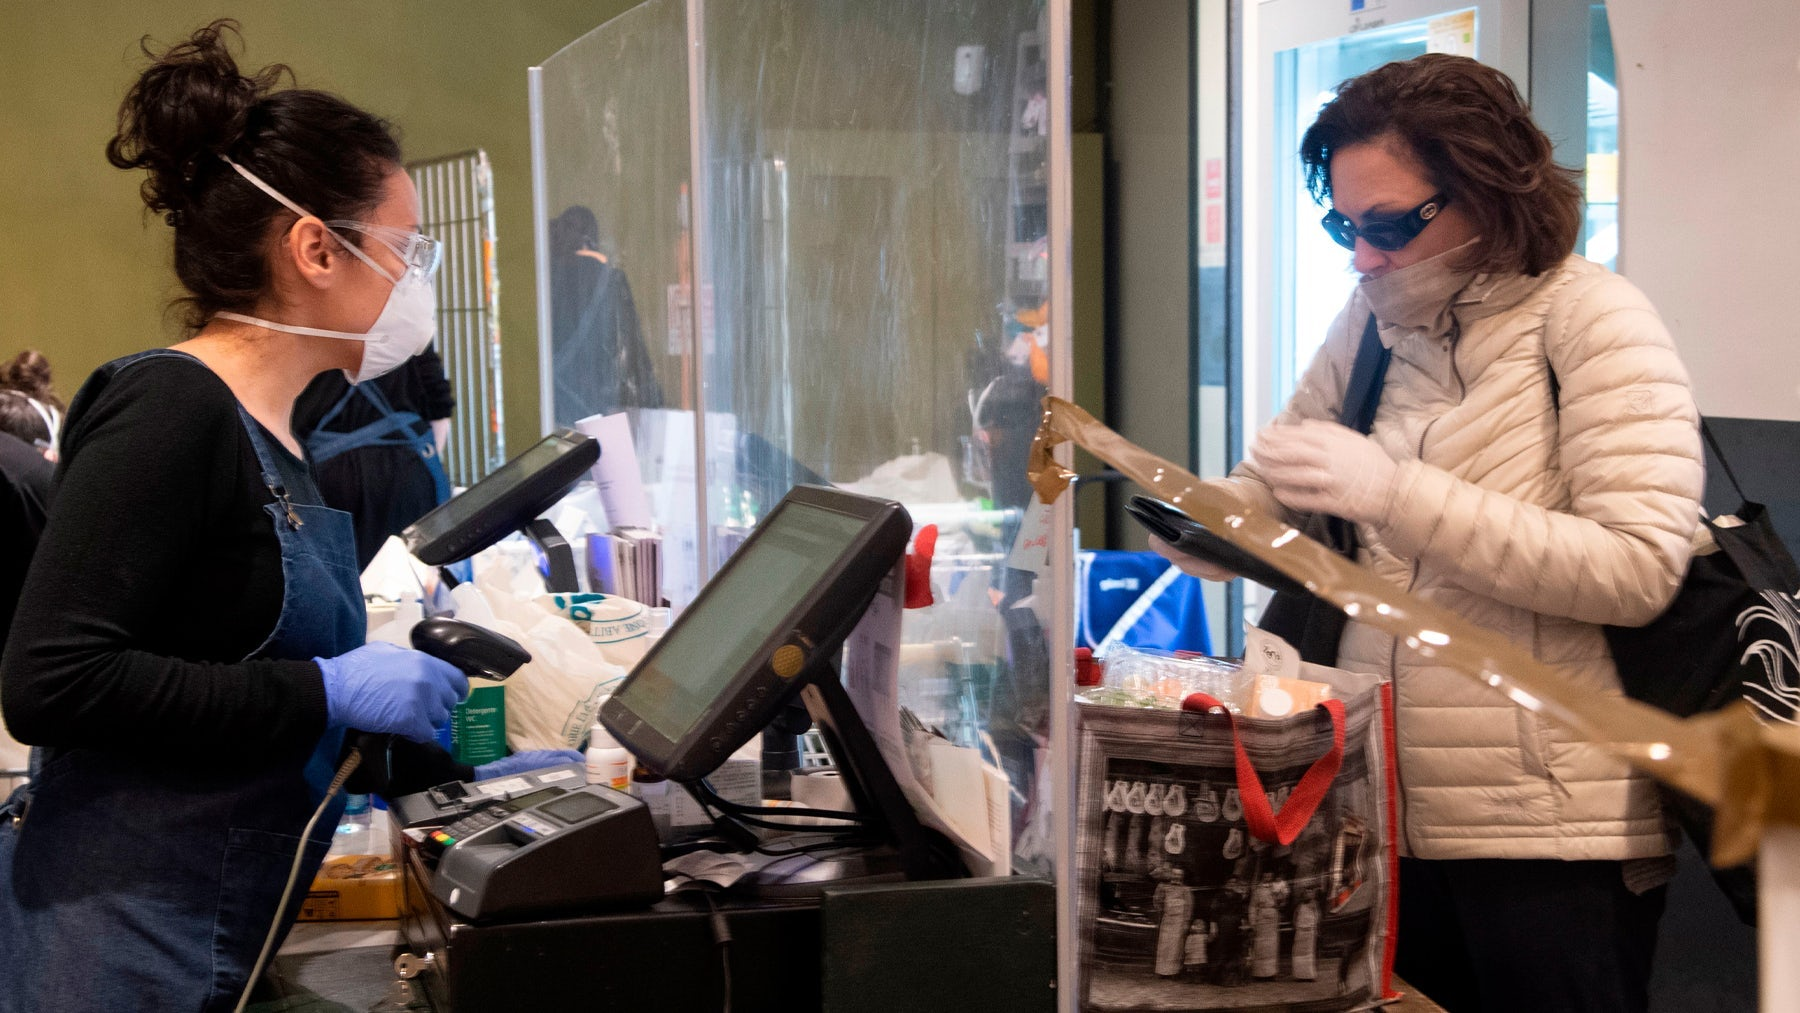 Face masks and plexiglass barriers have become the norm in shops that remain open during the Covid-19 pandemic   Source: Getty Images